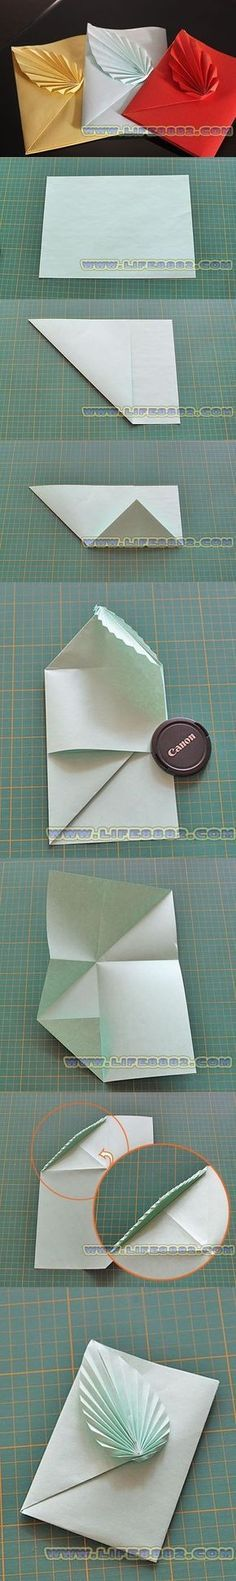 ♔ PAPER FOLDING ENVELOPE #GIFTWRAP: